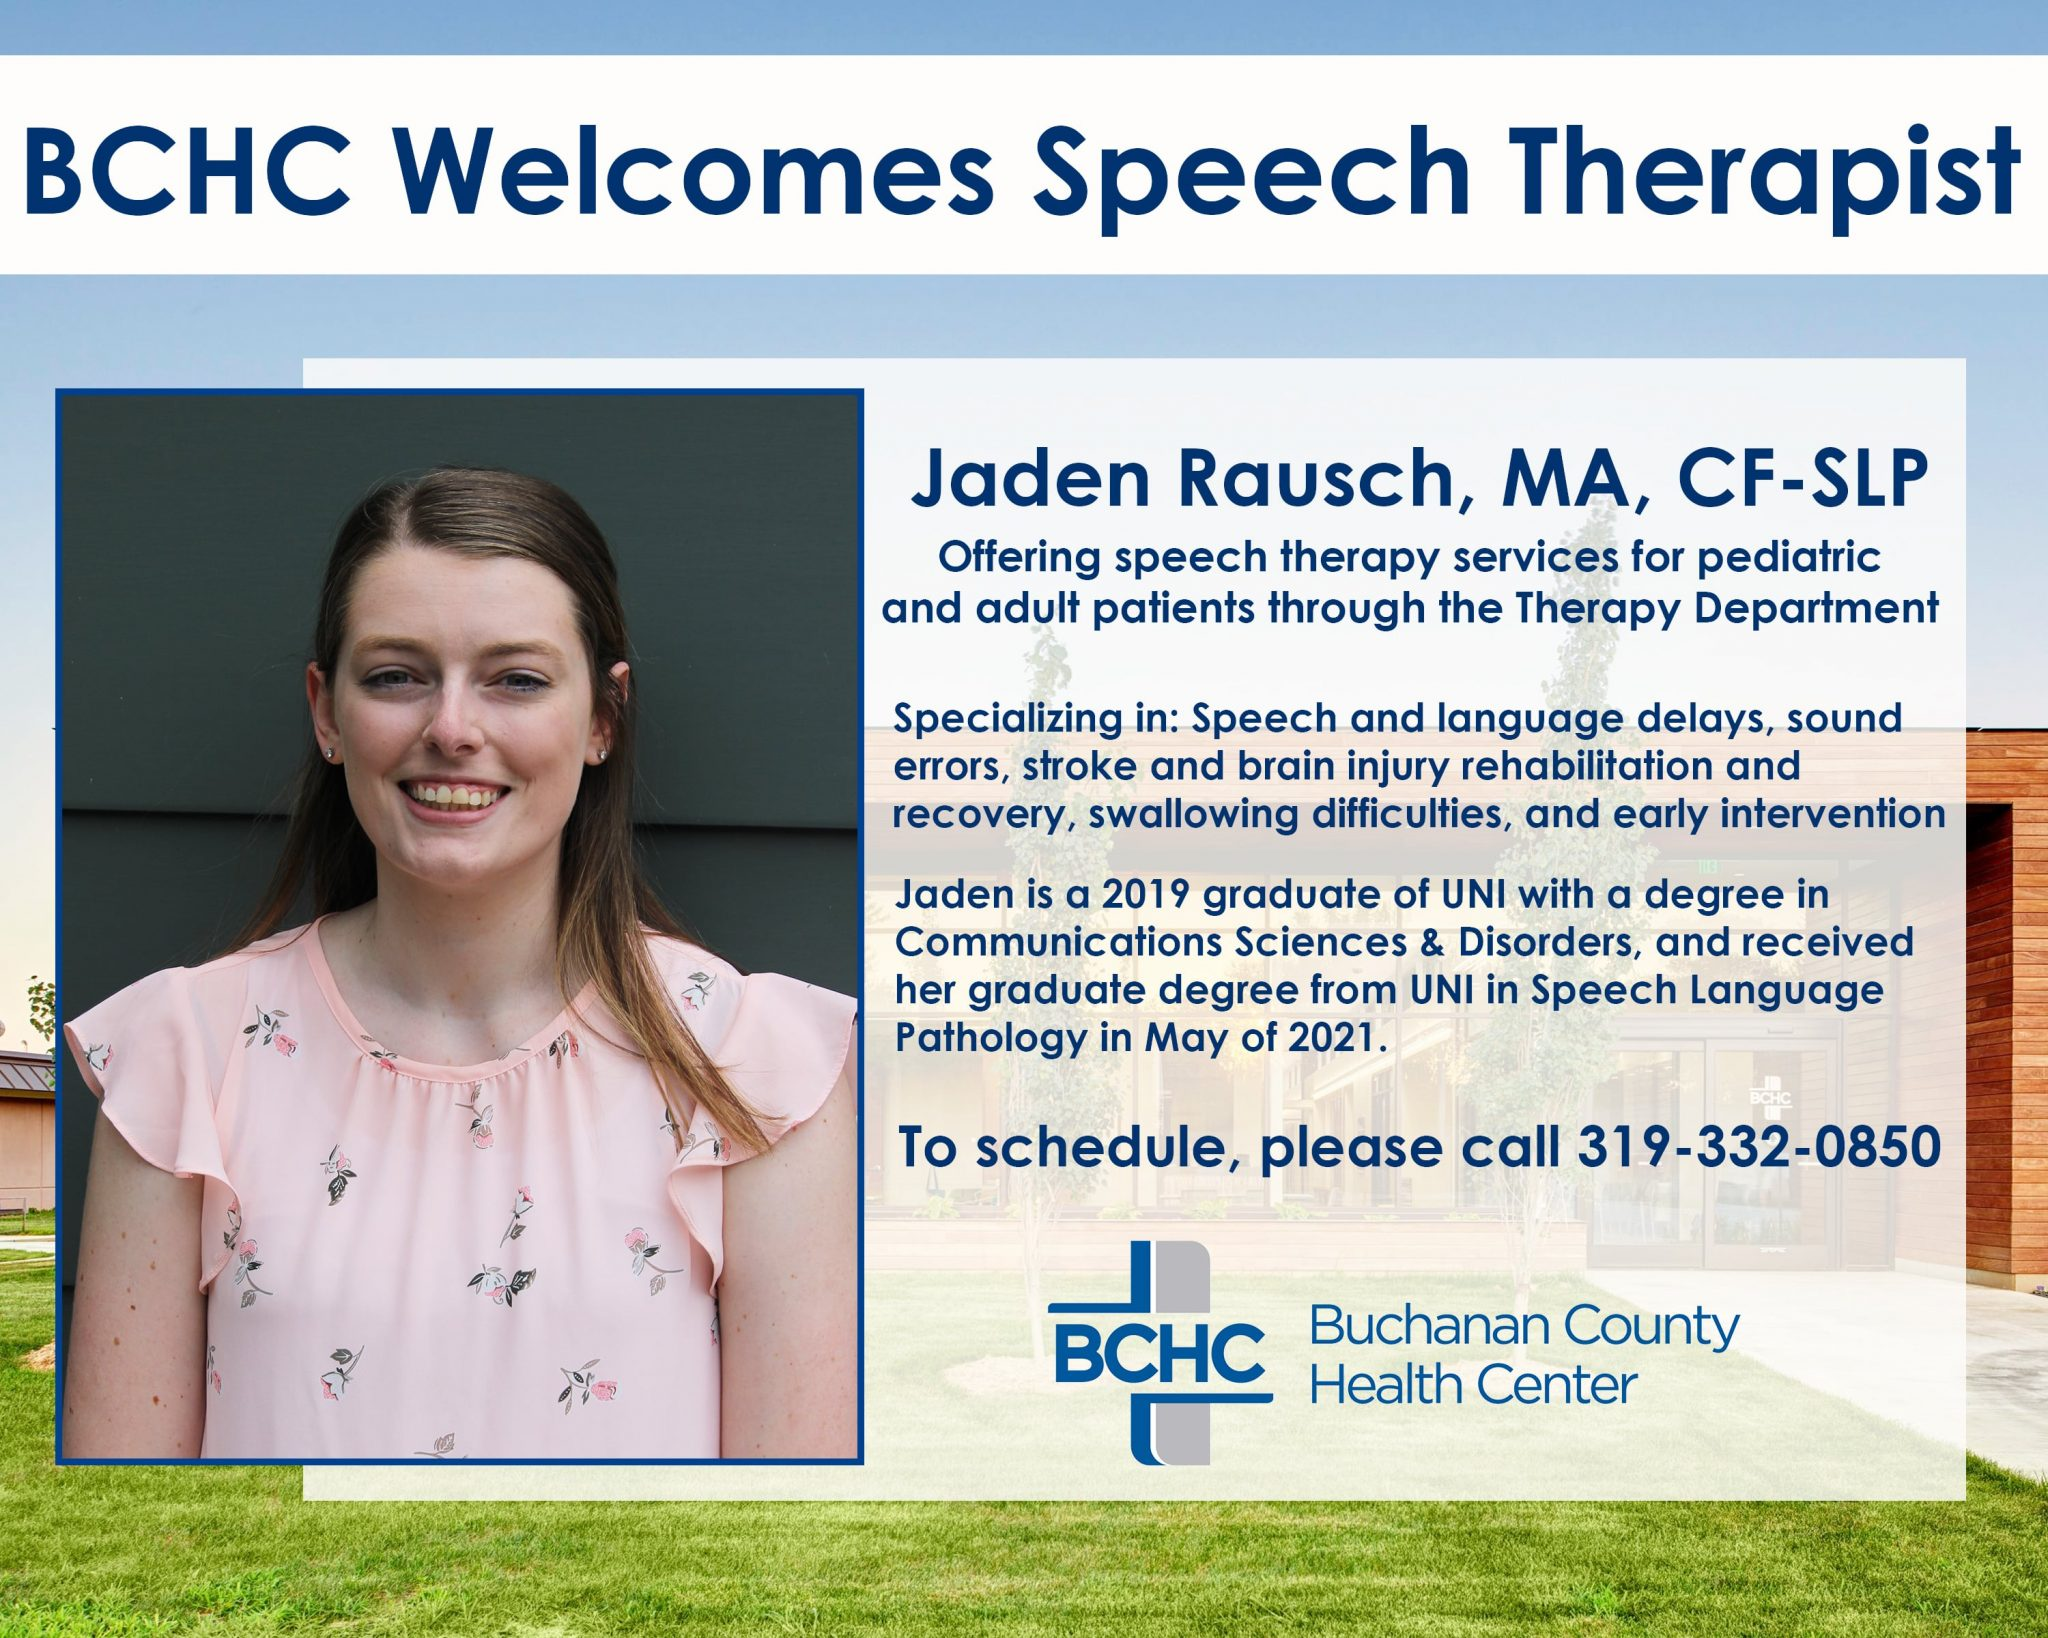 BCHC Welcomes Jaden Rausch, MA, CF-SLP to the Therapy & Rehabilitation Department